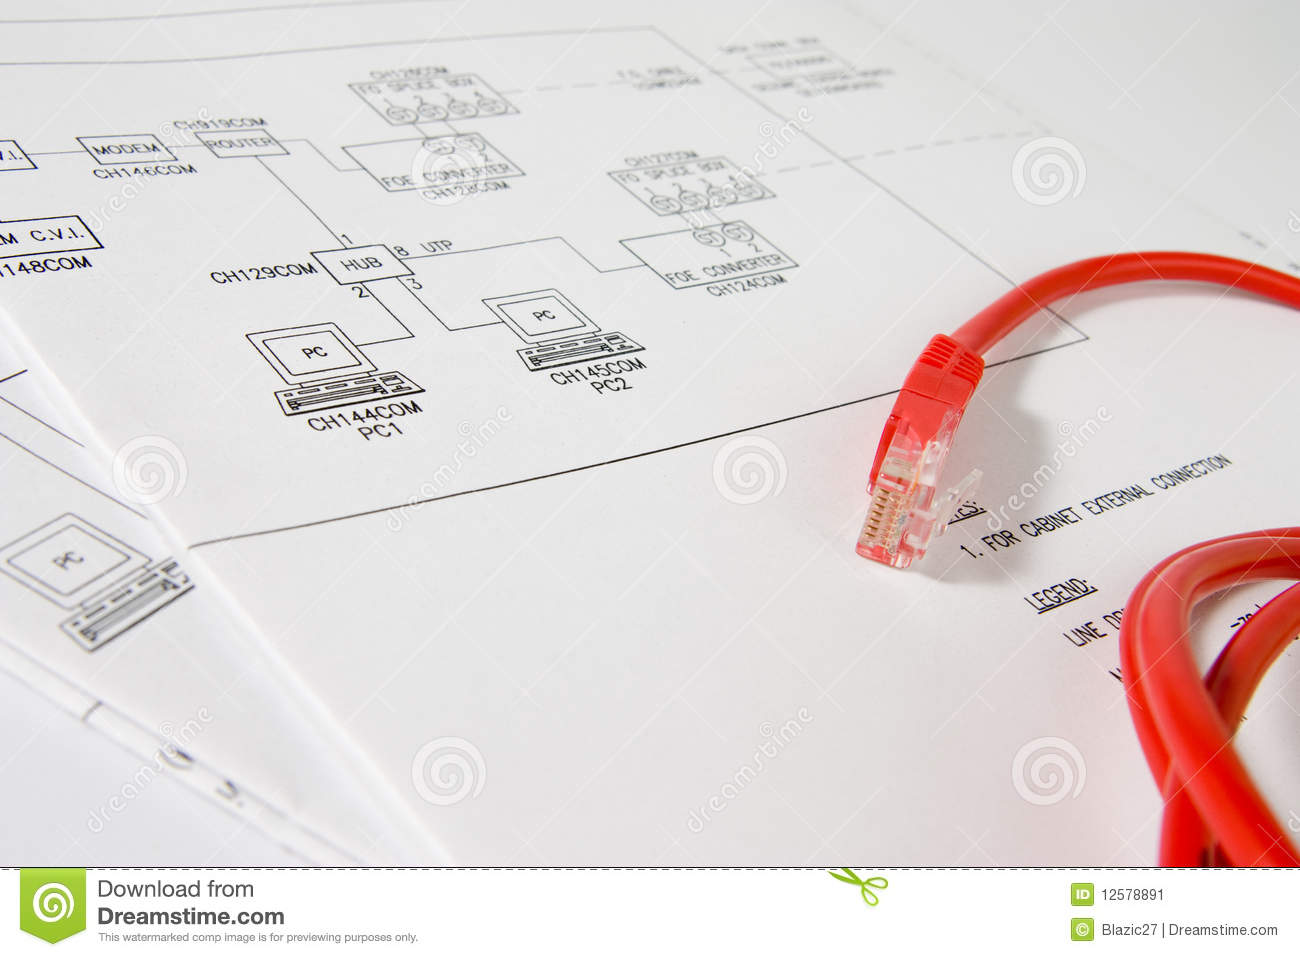 Network Scheme Stock Image Of Intranet Data Connections Rj45 Connector Wiring Diagram On Pc To Blueprint For A Computer With Red Infront